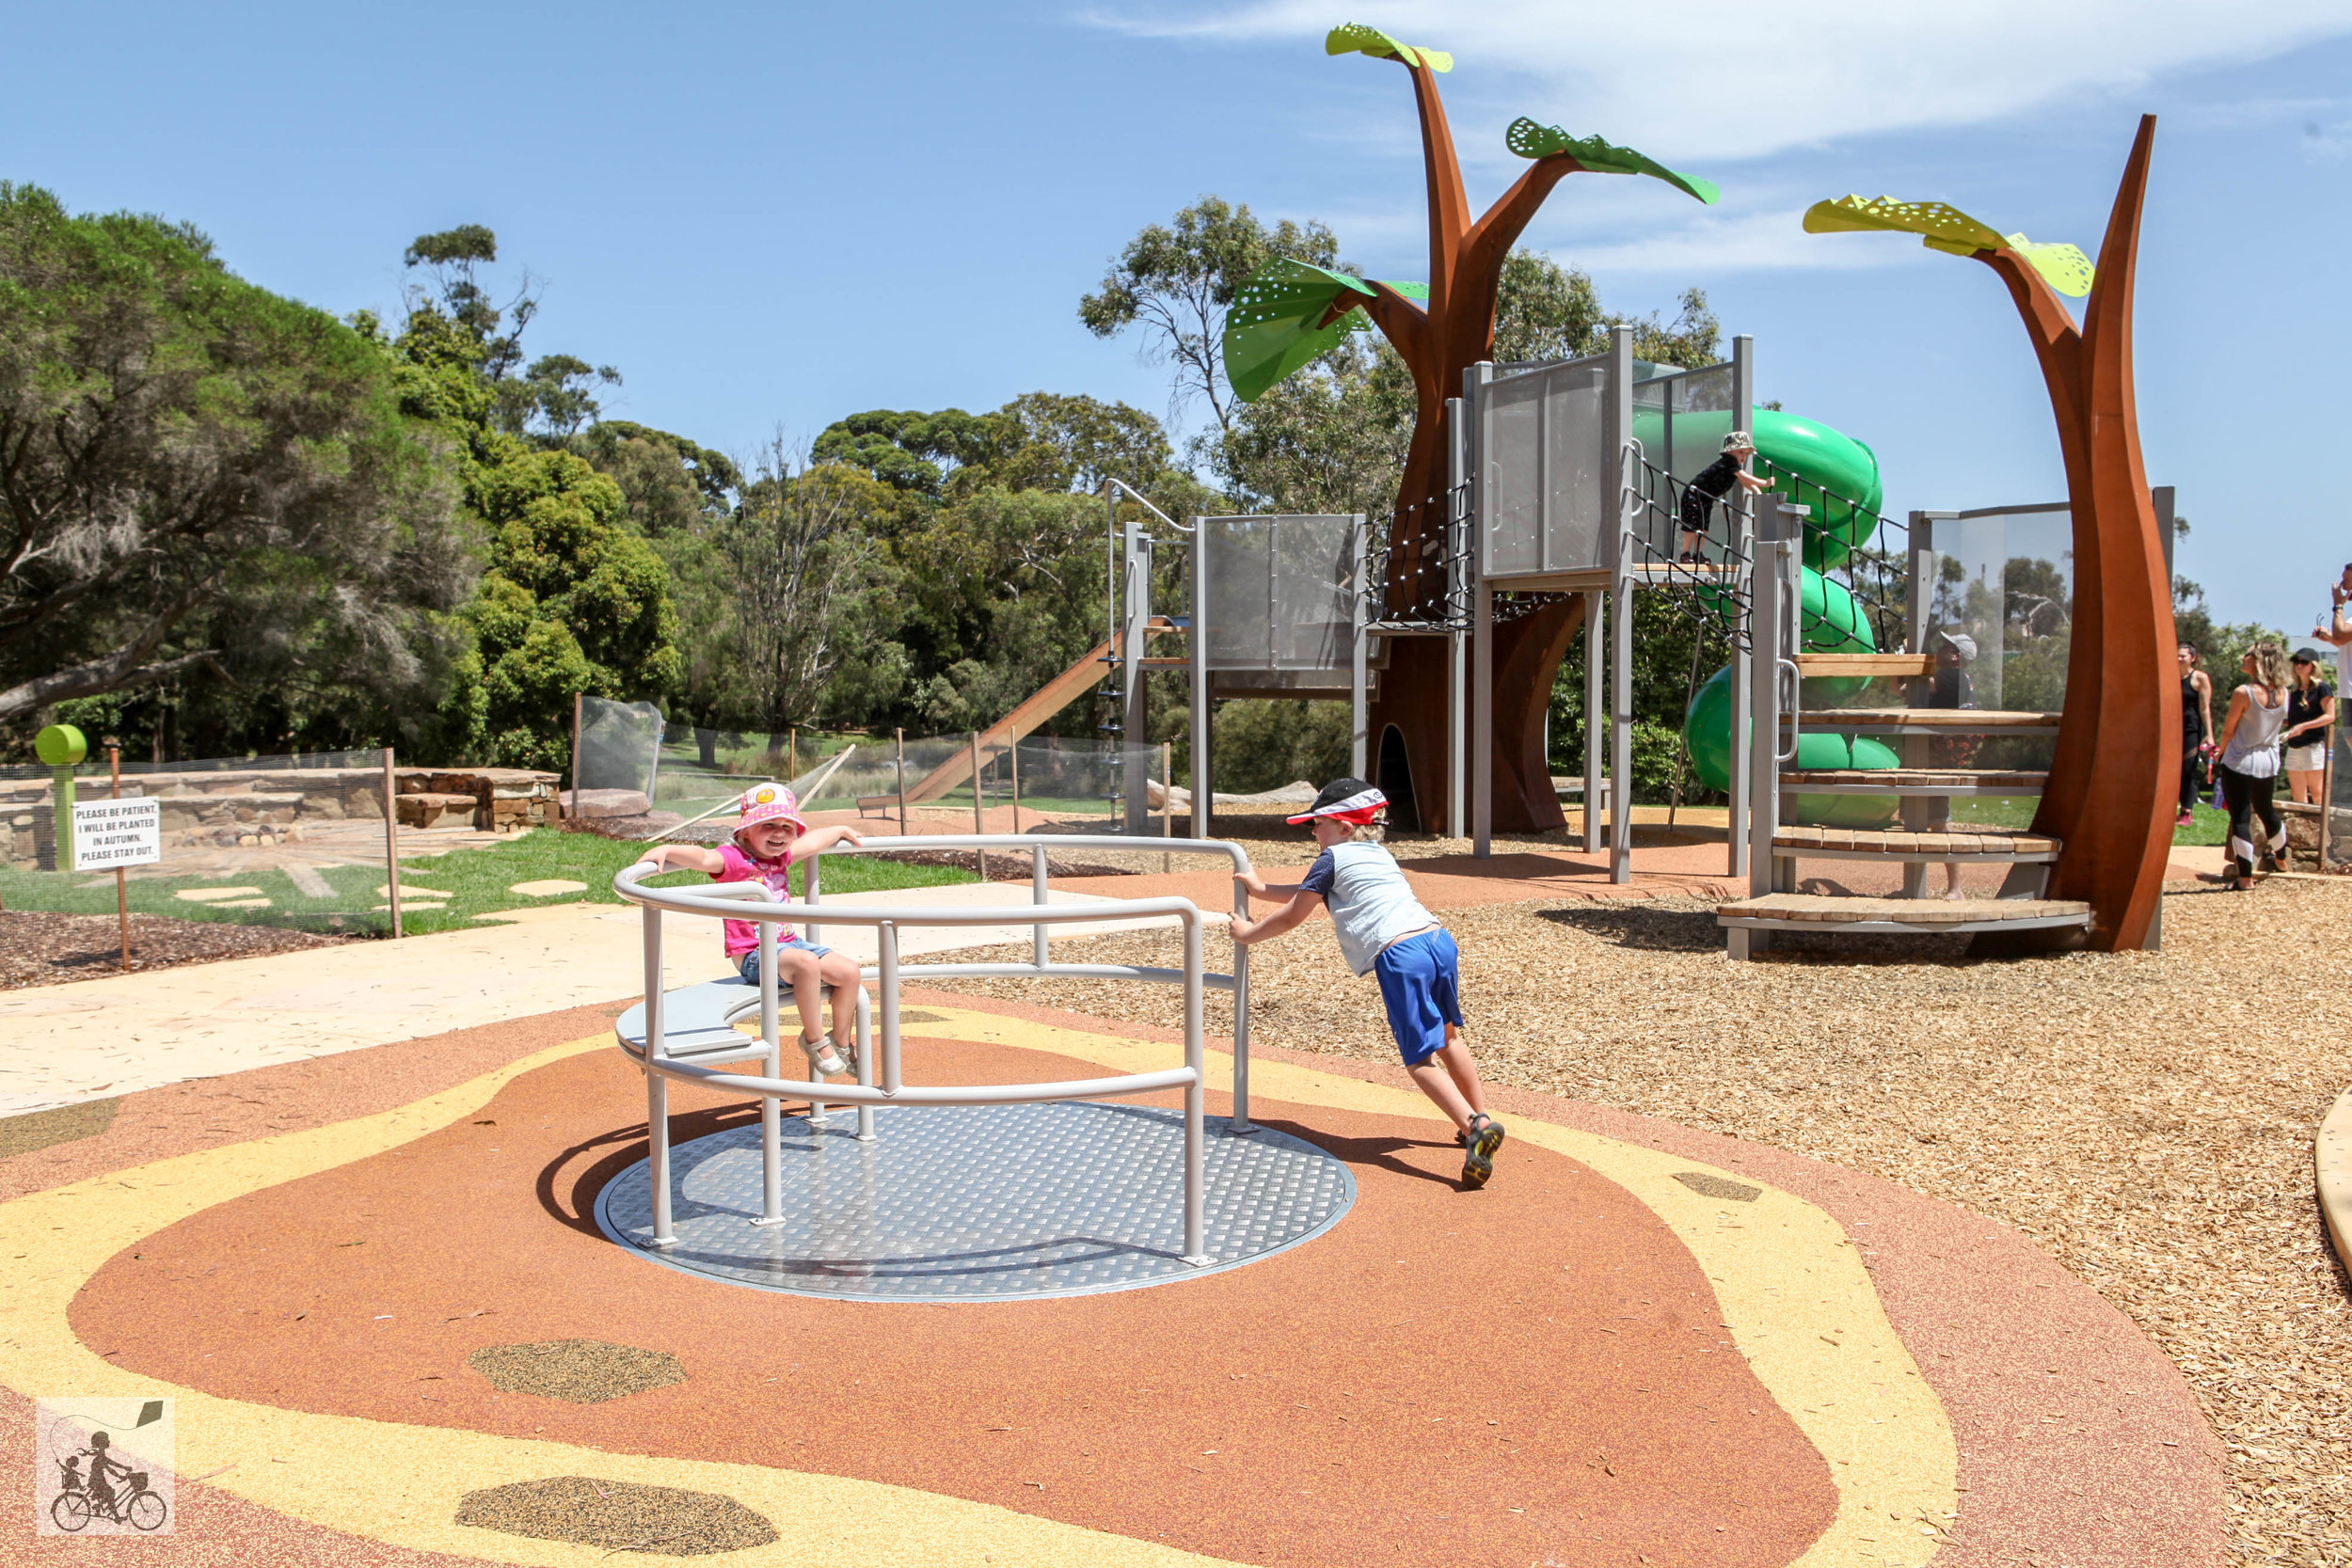 playground at George Pentland - Mamma Knows South (21 of 36).jpg